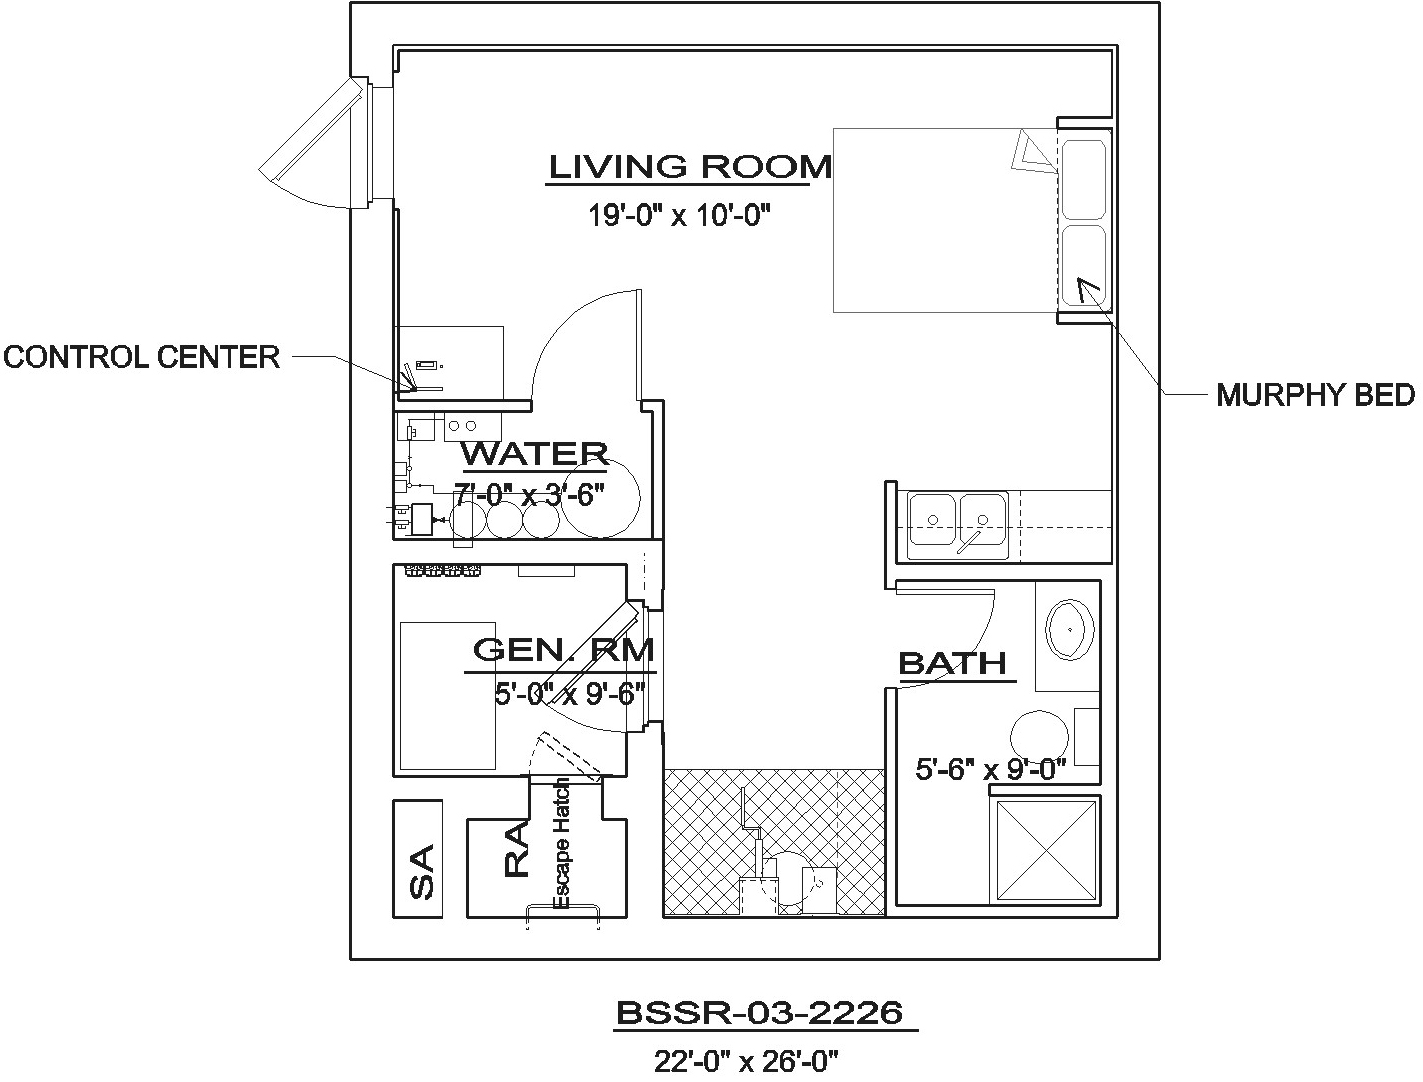 house layout generator bssr 03 2226 northwest shelter systems 12447